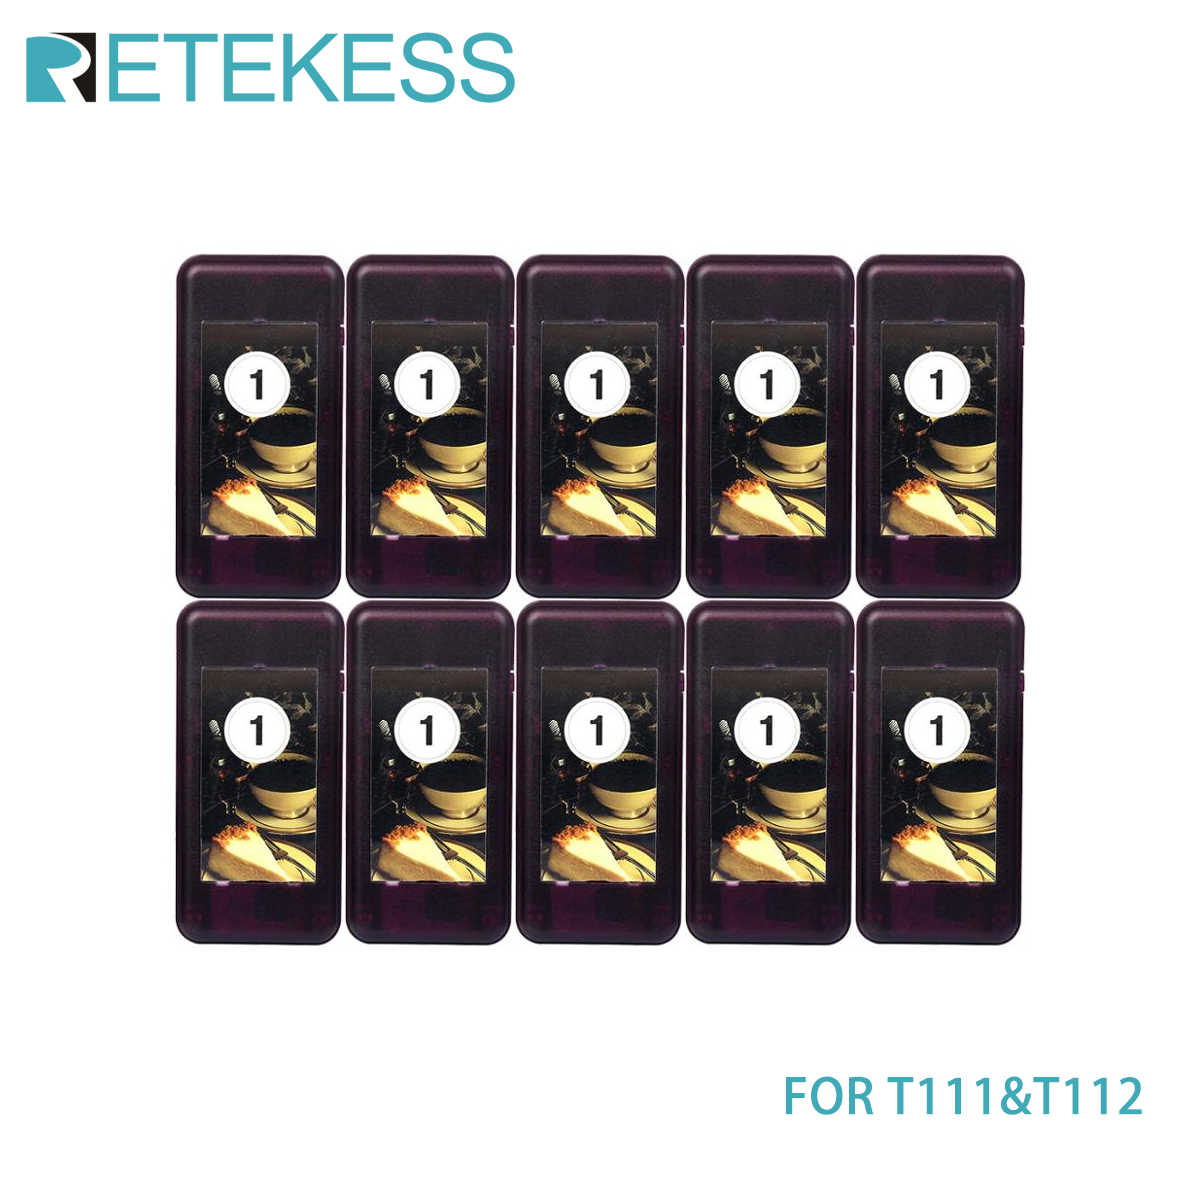 Retekess 10 pcs Coaster Pager Receiver for T111/T112 Wireless Restaurant Paging Queuing System Calling System 433MHz